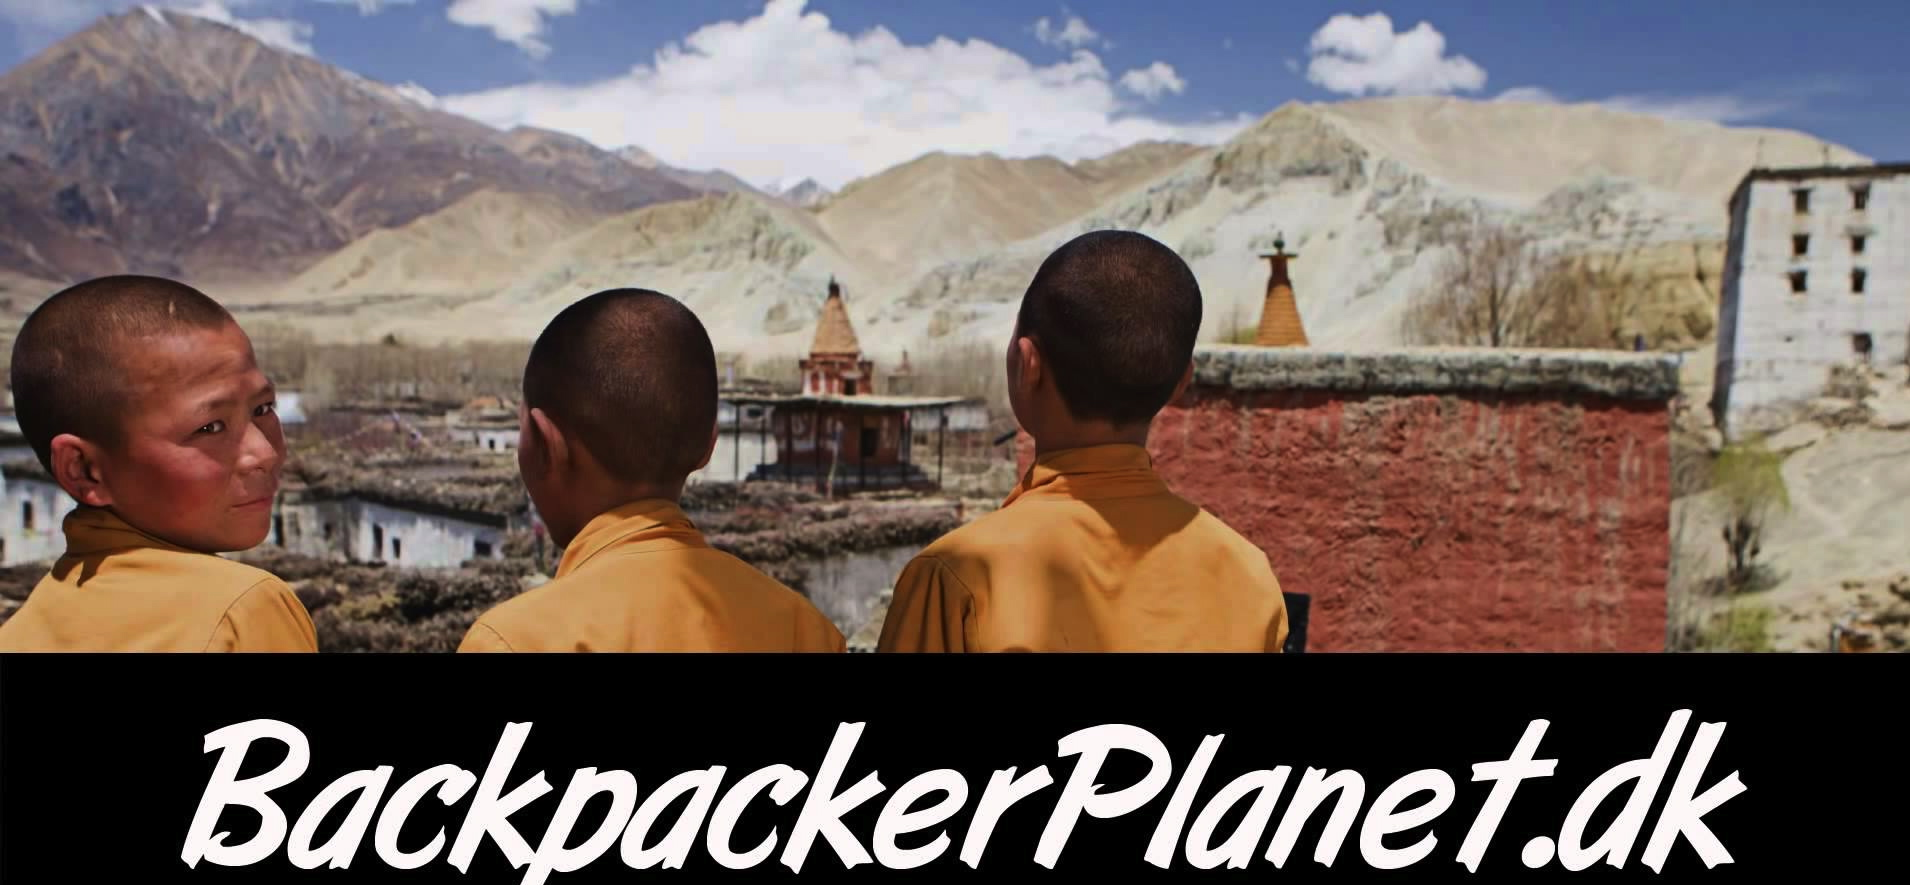 Read more about Backpackerplanet.Dk